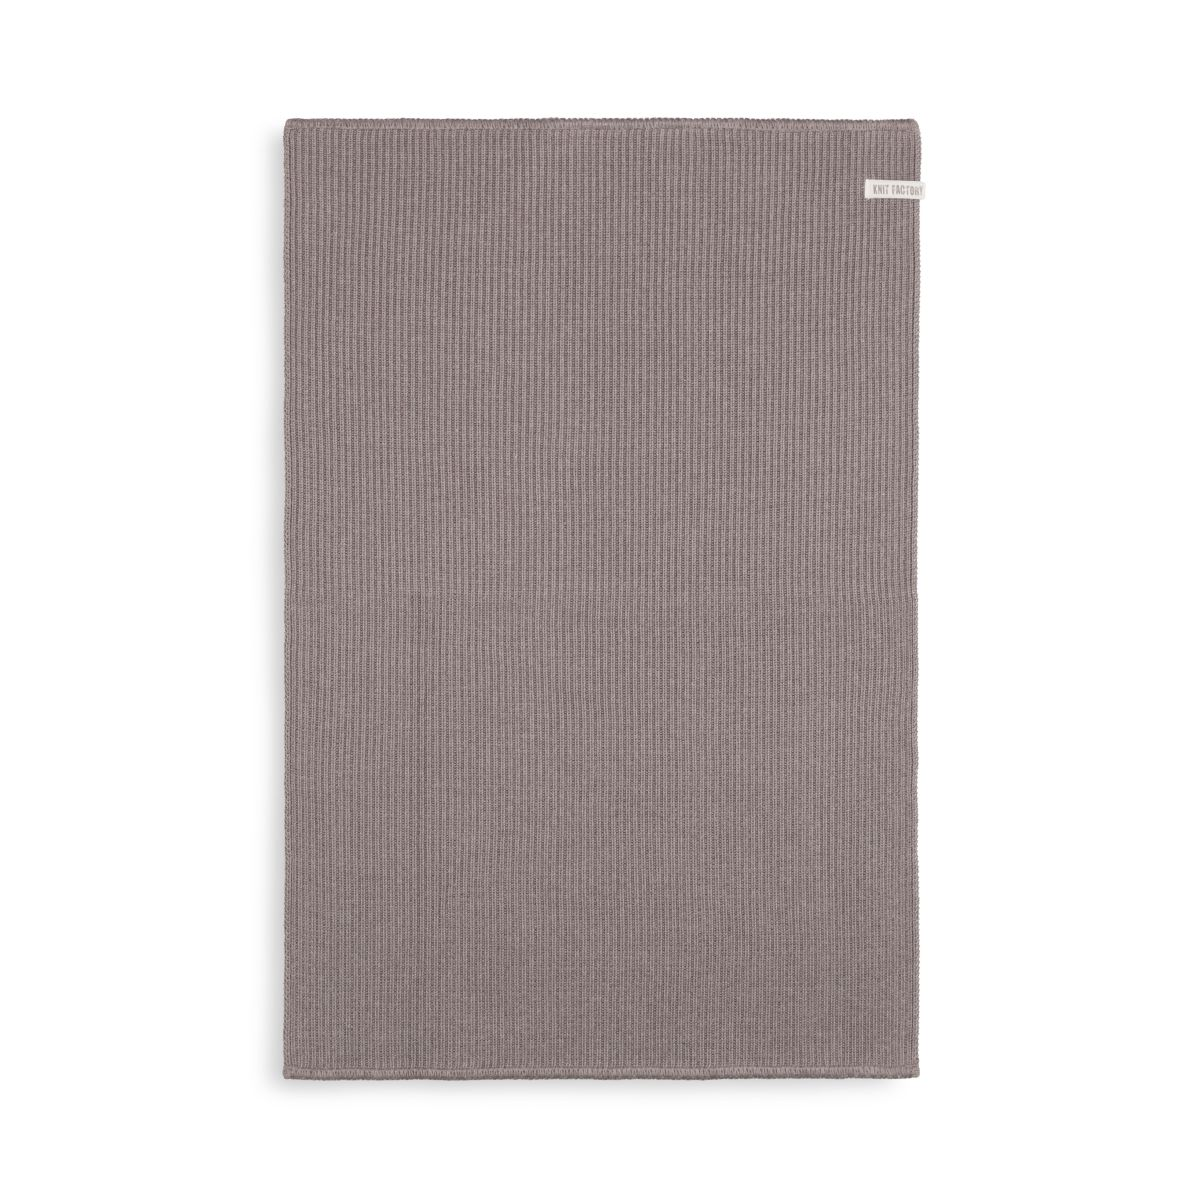 knit factory kf20322802952 badmat morres taupe 80x50 1